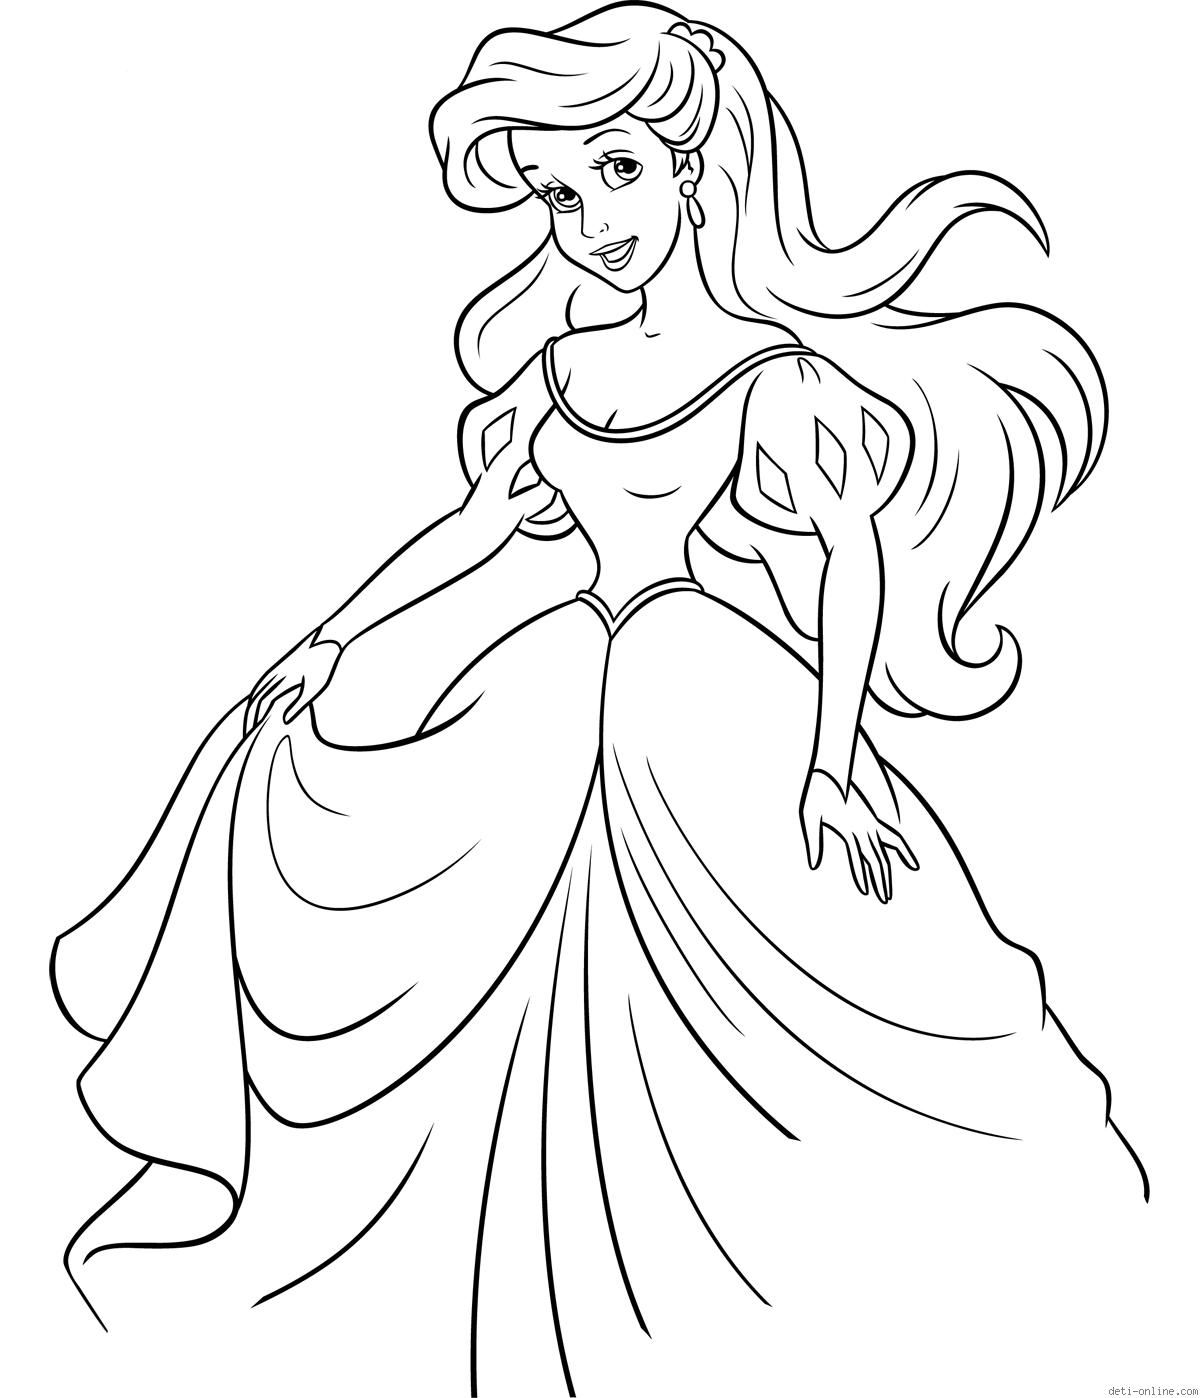 Ariel In The Dress Coloring Page Mermaid Coloring Pages Ariel